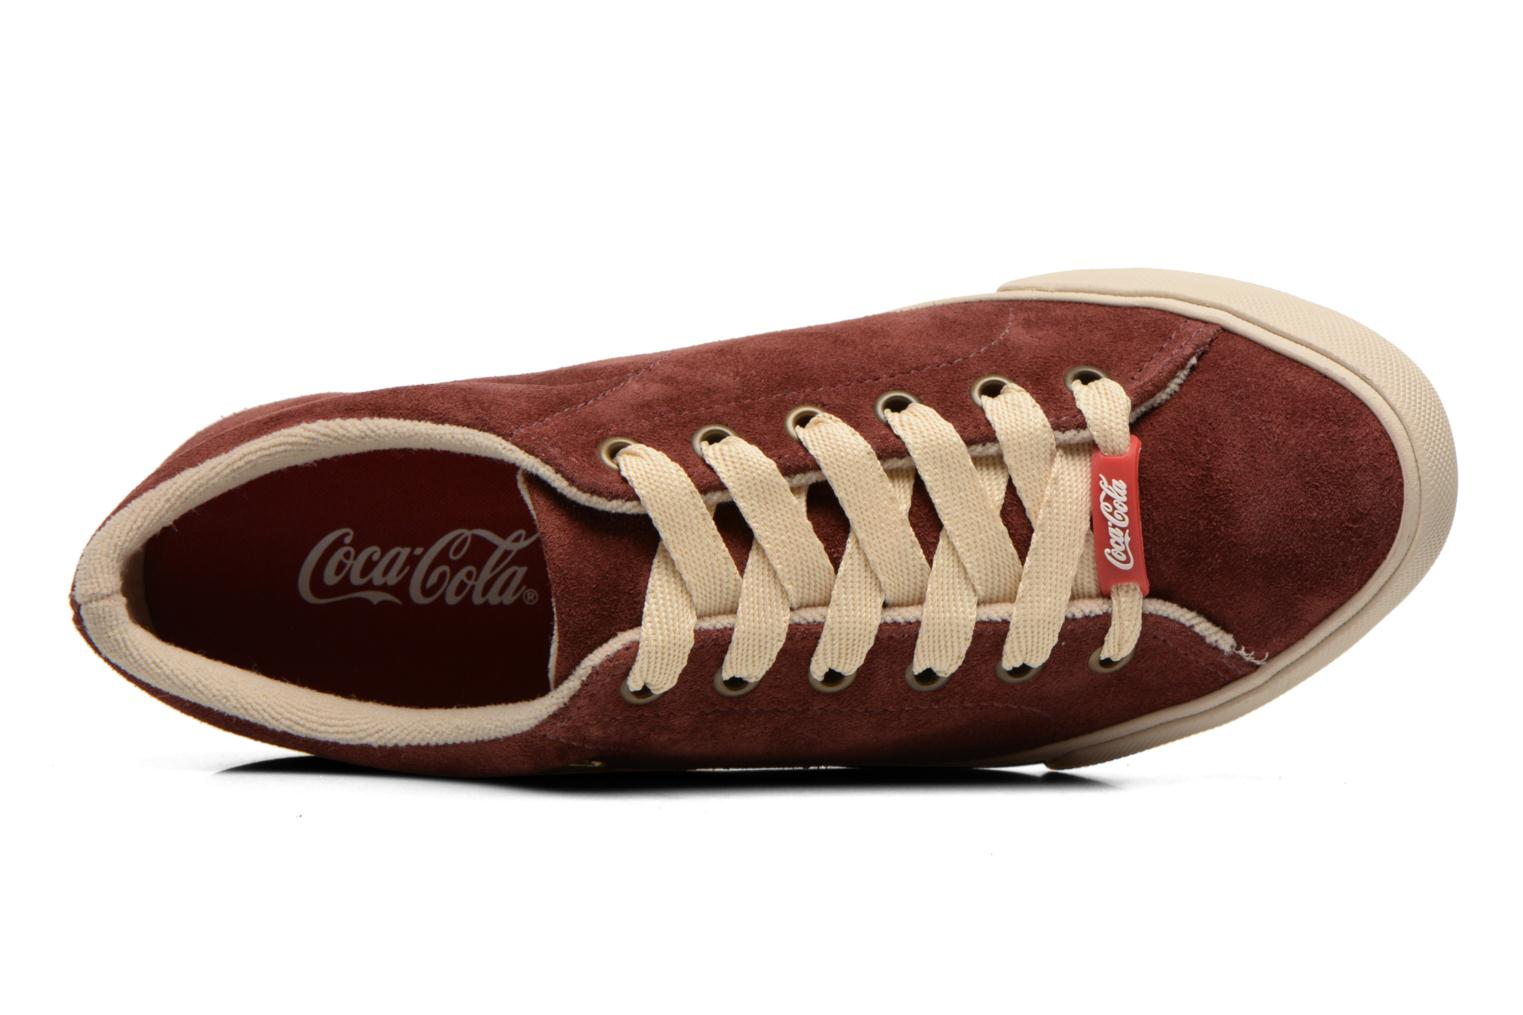 Flux Shoes Suede Bordeaux cola Coca EZn1qxBw6A